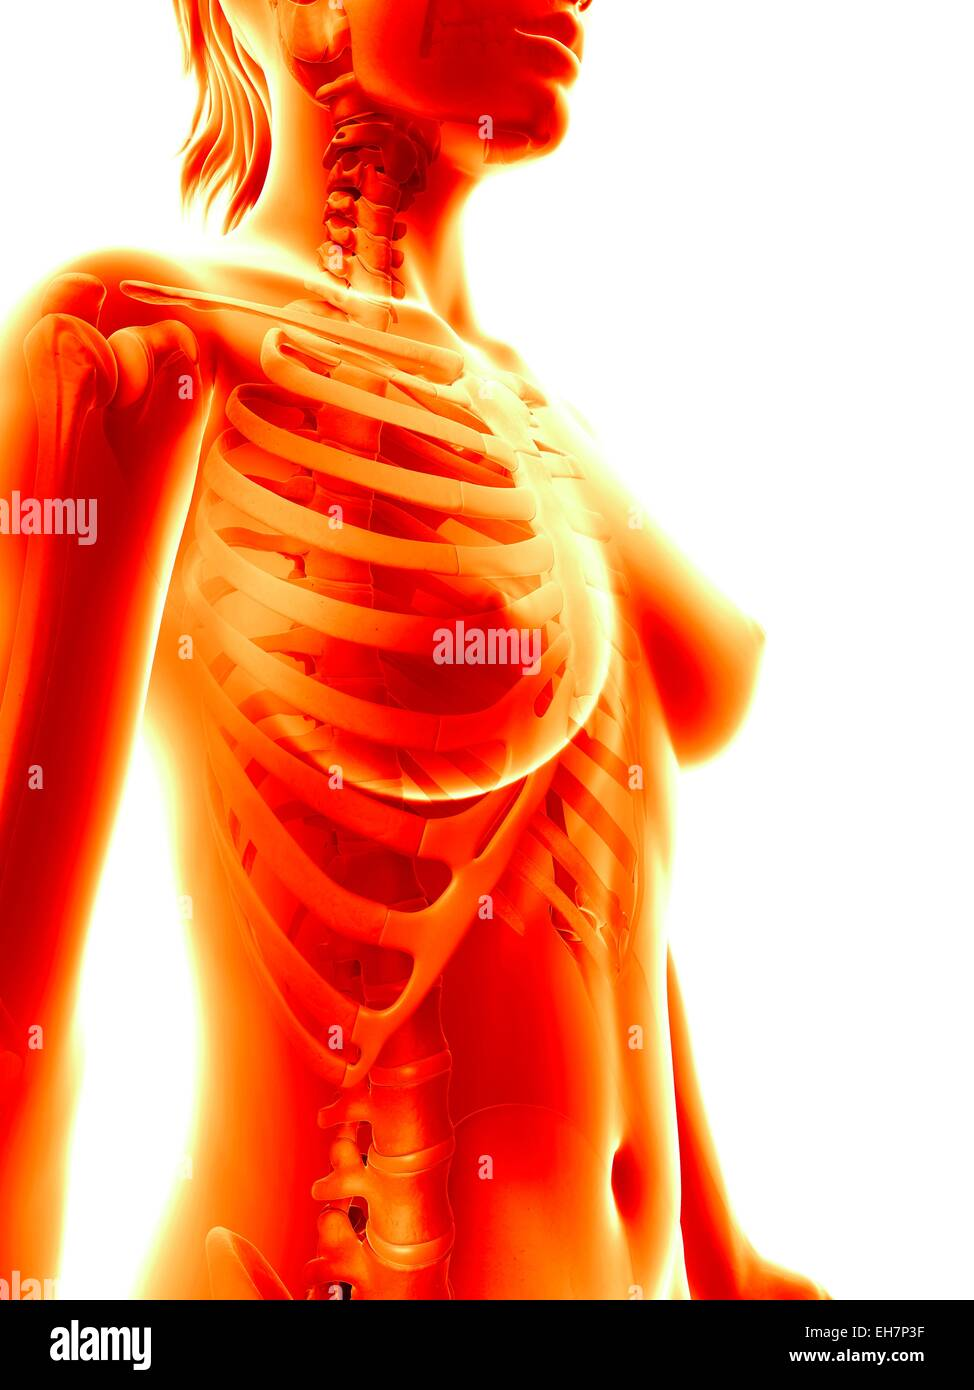 Female Ribcage Illustration Stock Photo 79461635 Alamy